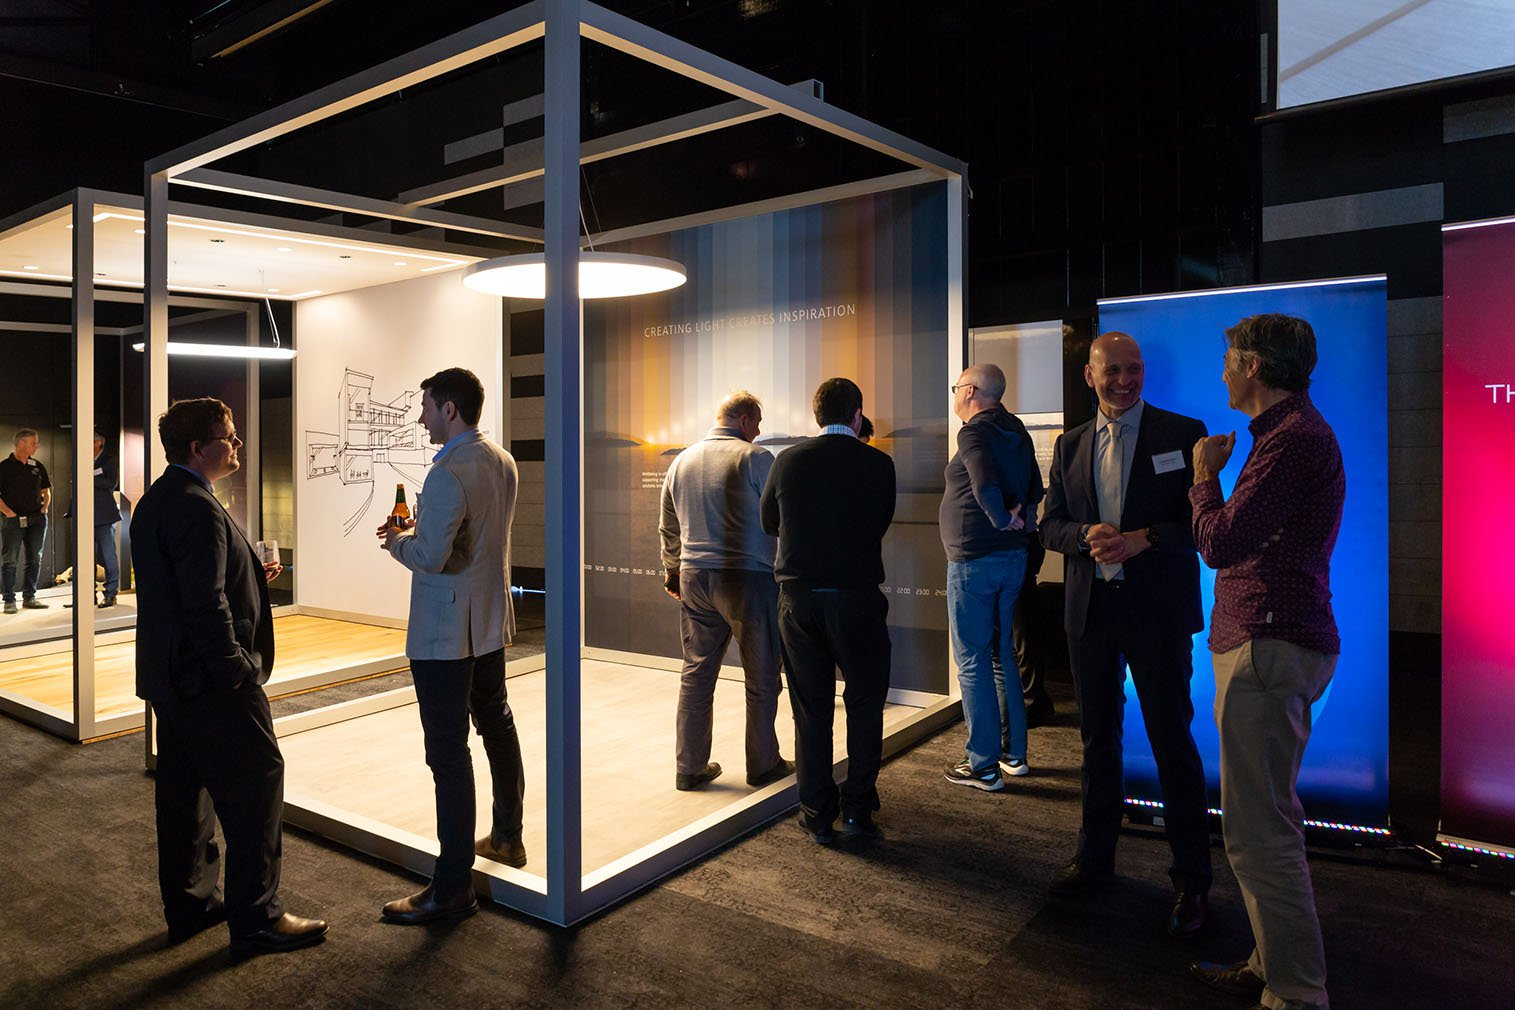 Zumtobel Business Conference Event by Alive